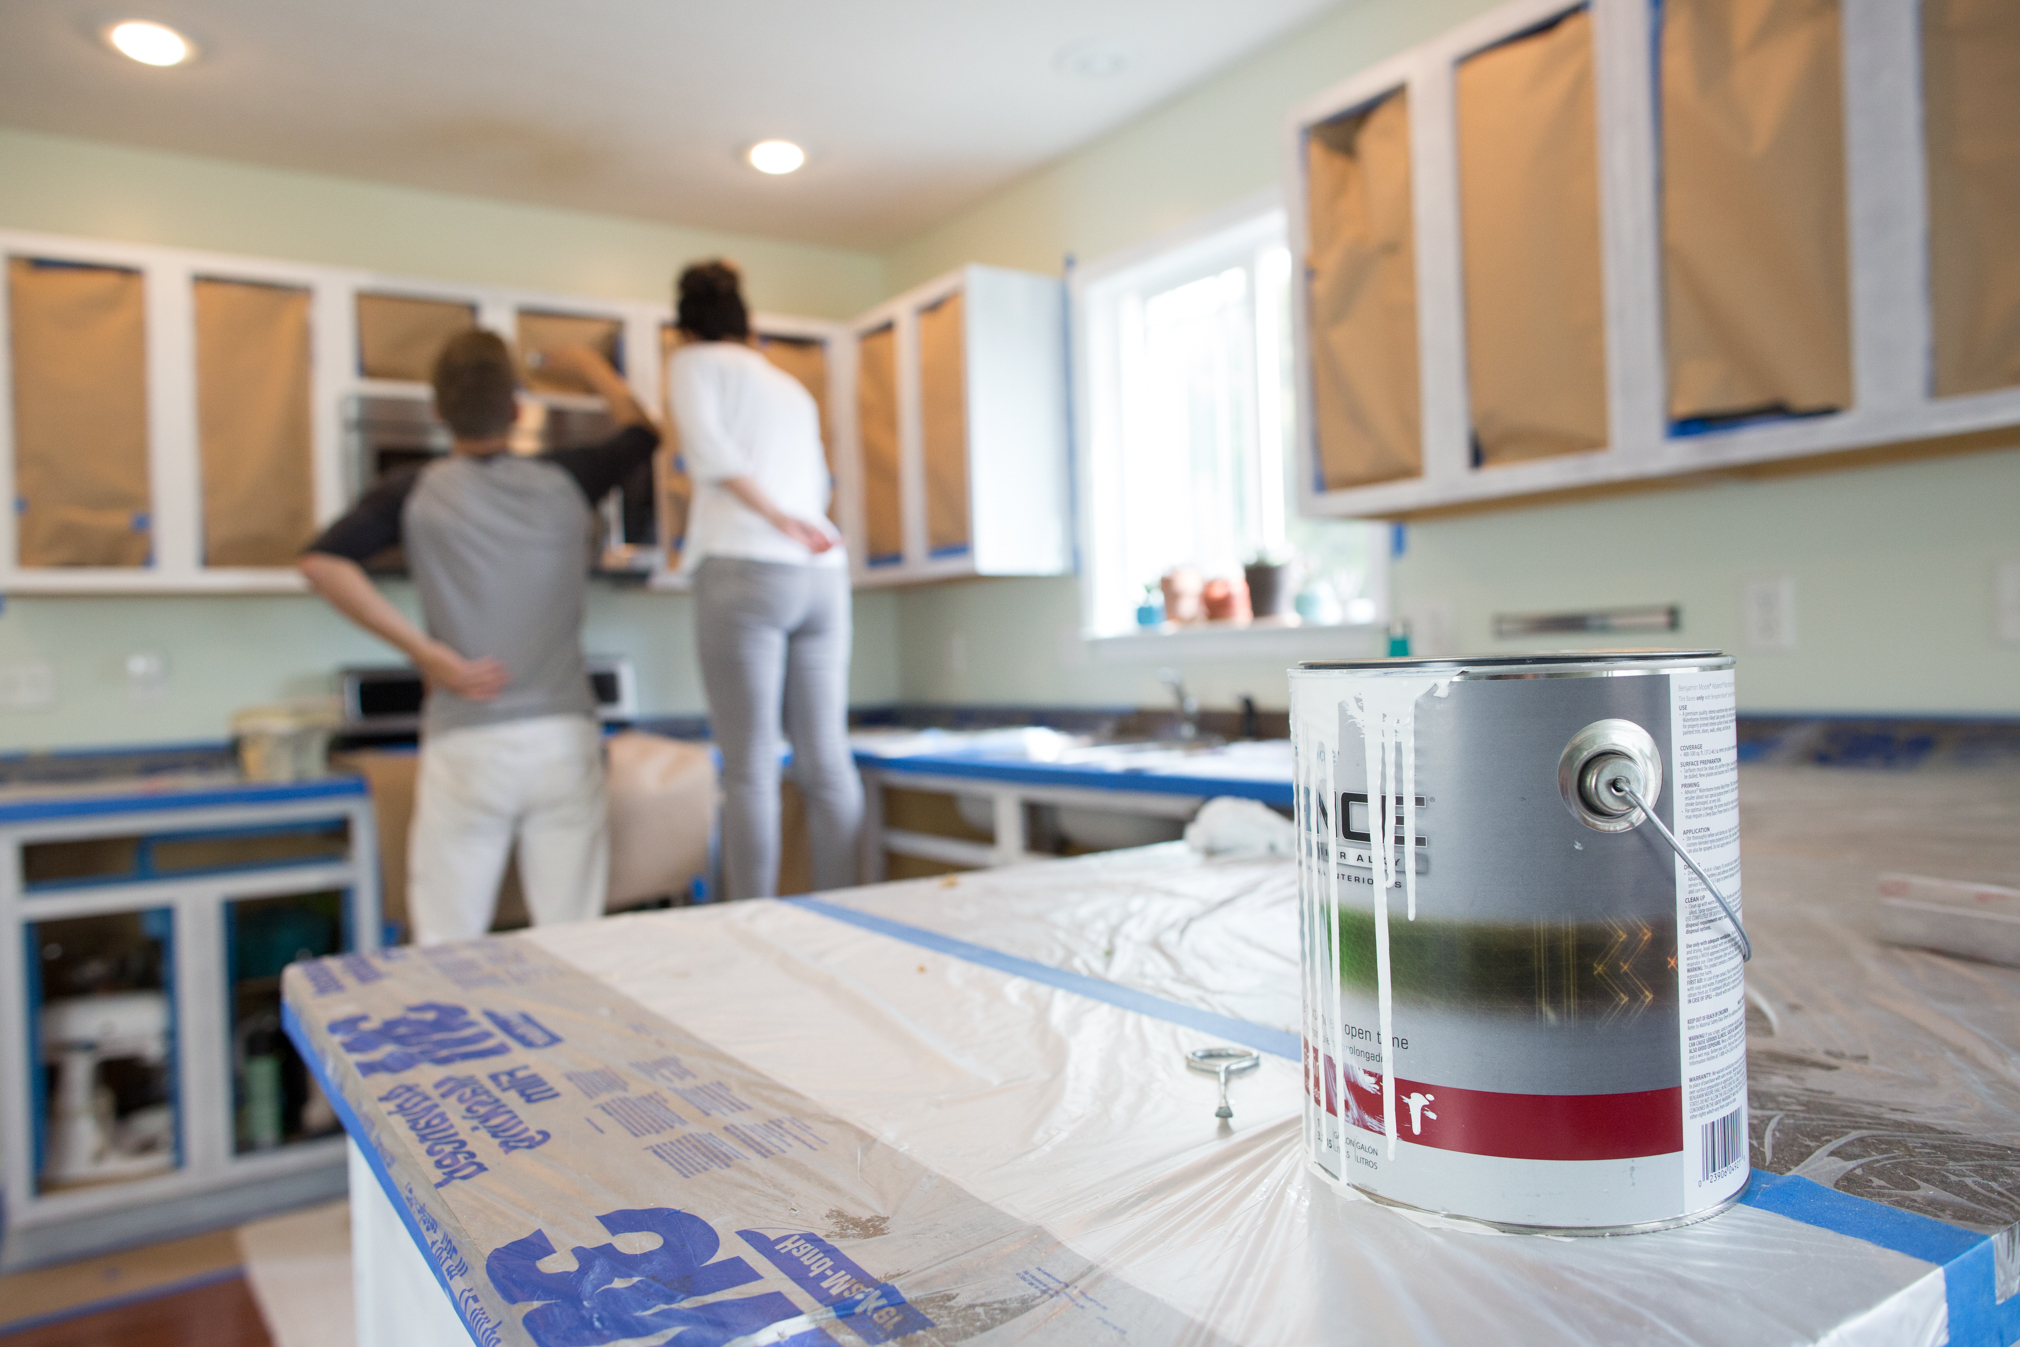 The Best Paint for Painting Kitchen Cabinets | Kitchn